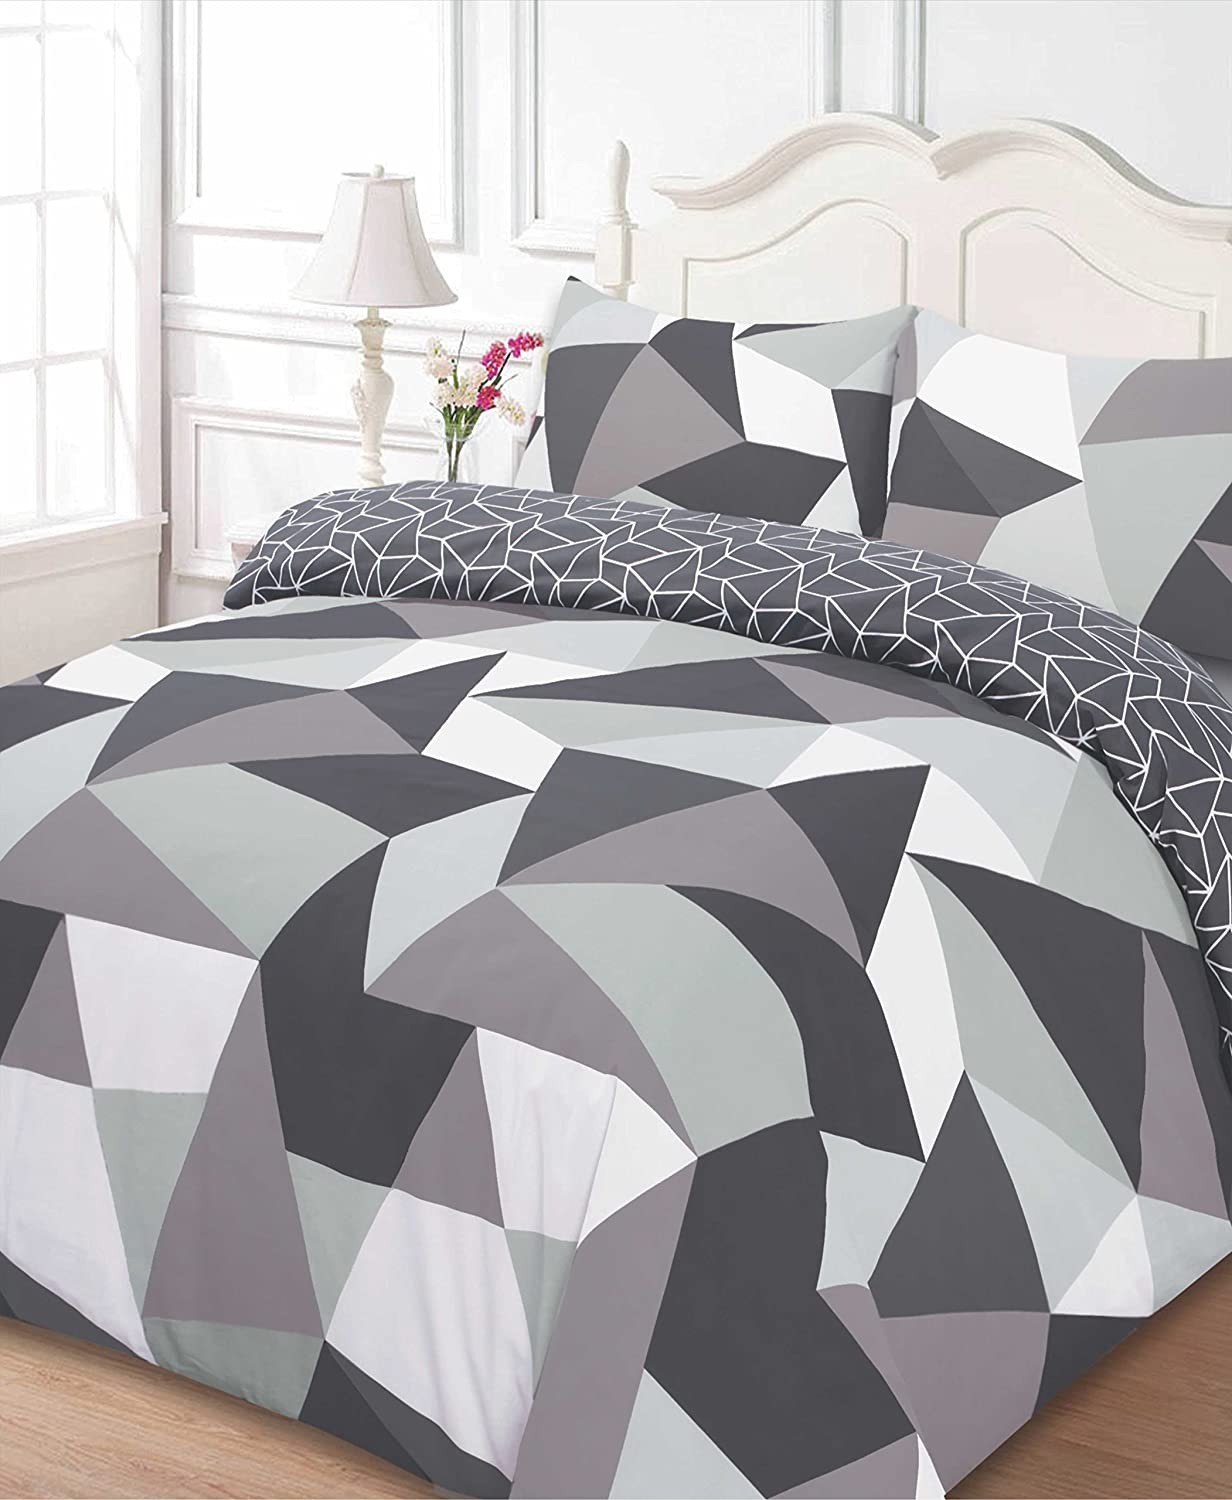 Dreamscene Polycotton Duvet Cover with Pillow Case Bedding King - Shapes Black SHABK03